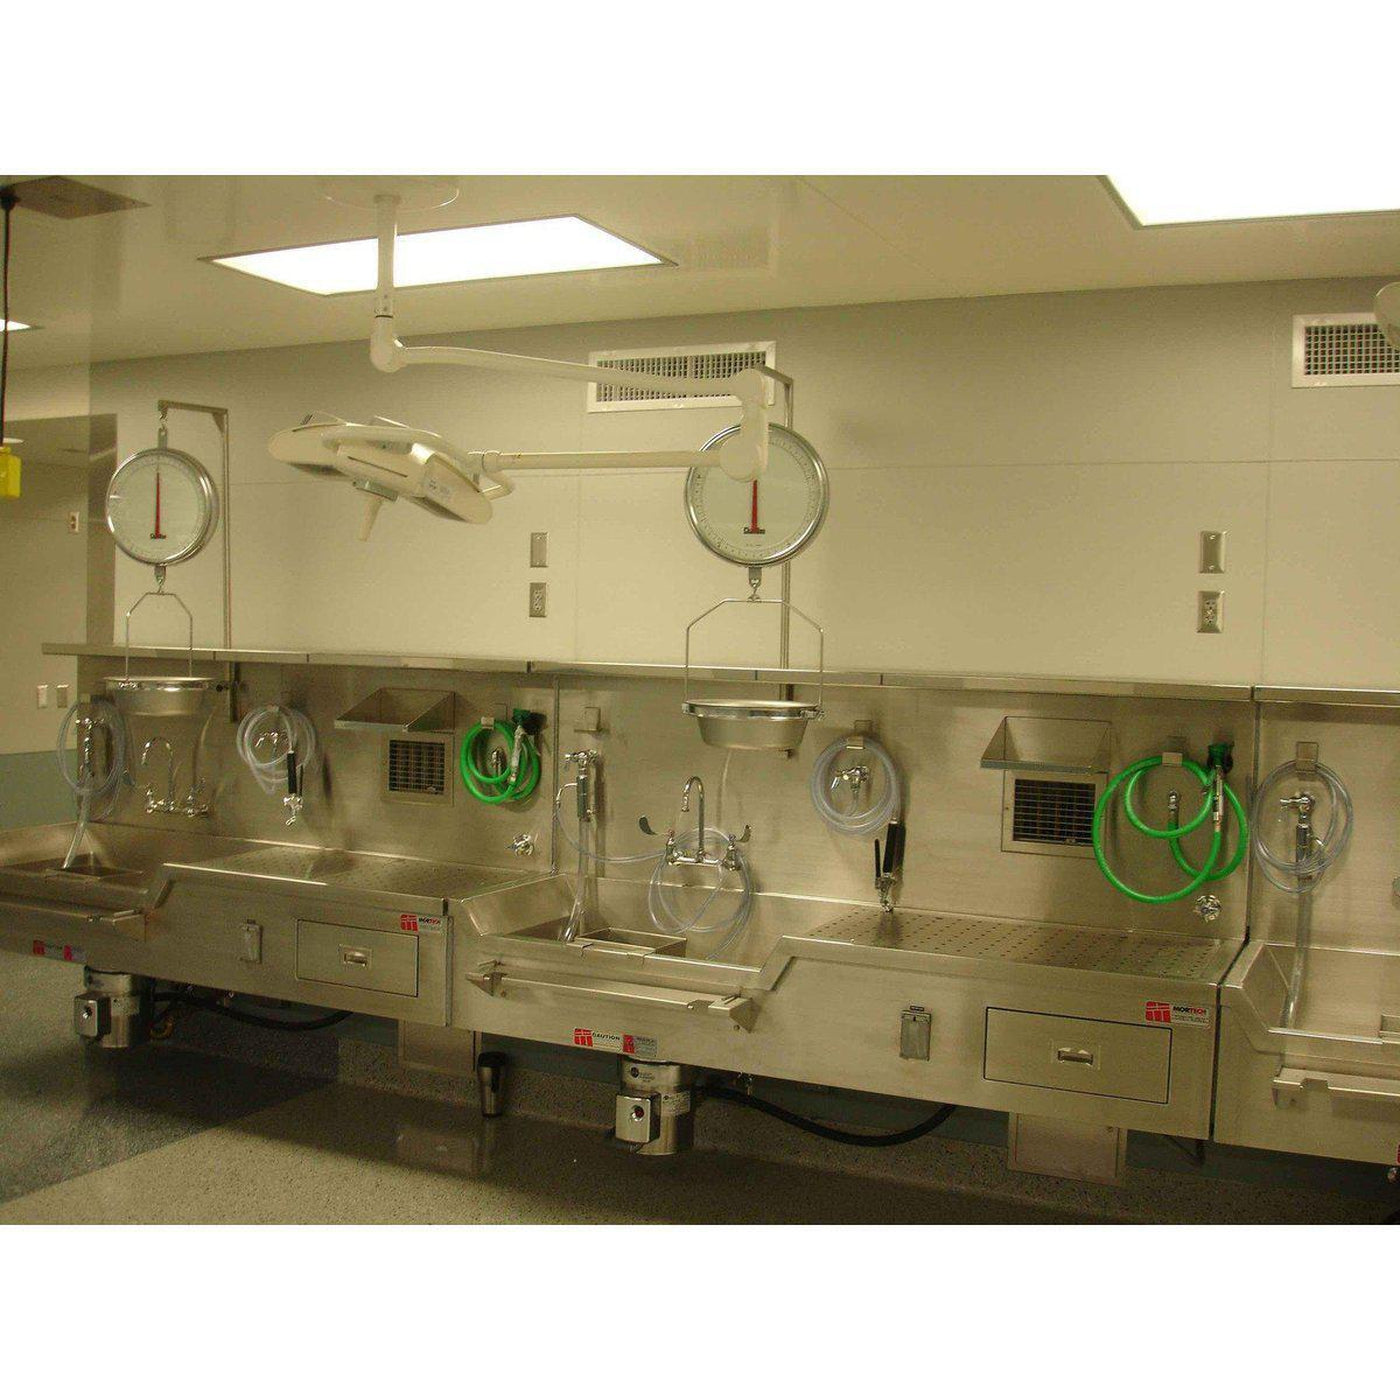 Wall Mount Autopsy Station, Left Sink-Sink Station-Mortech Manufacturing Company Inc. Quality Stainless Steel Autopsy, Morgue, Funeral Home, Necropsy, Veterinary / Anatomy, Dissection Equipment and Accessories